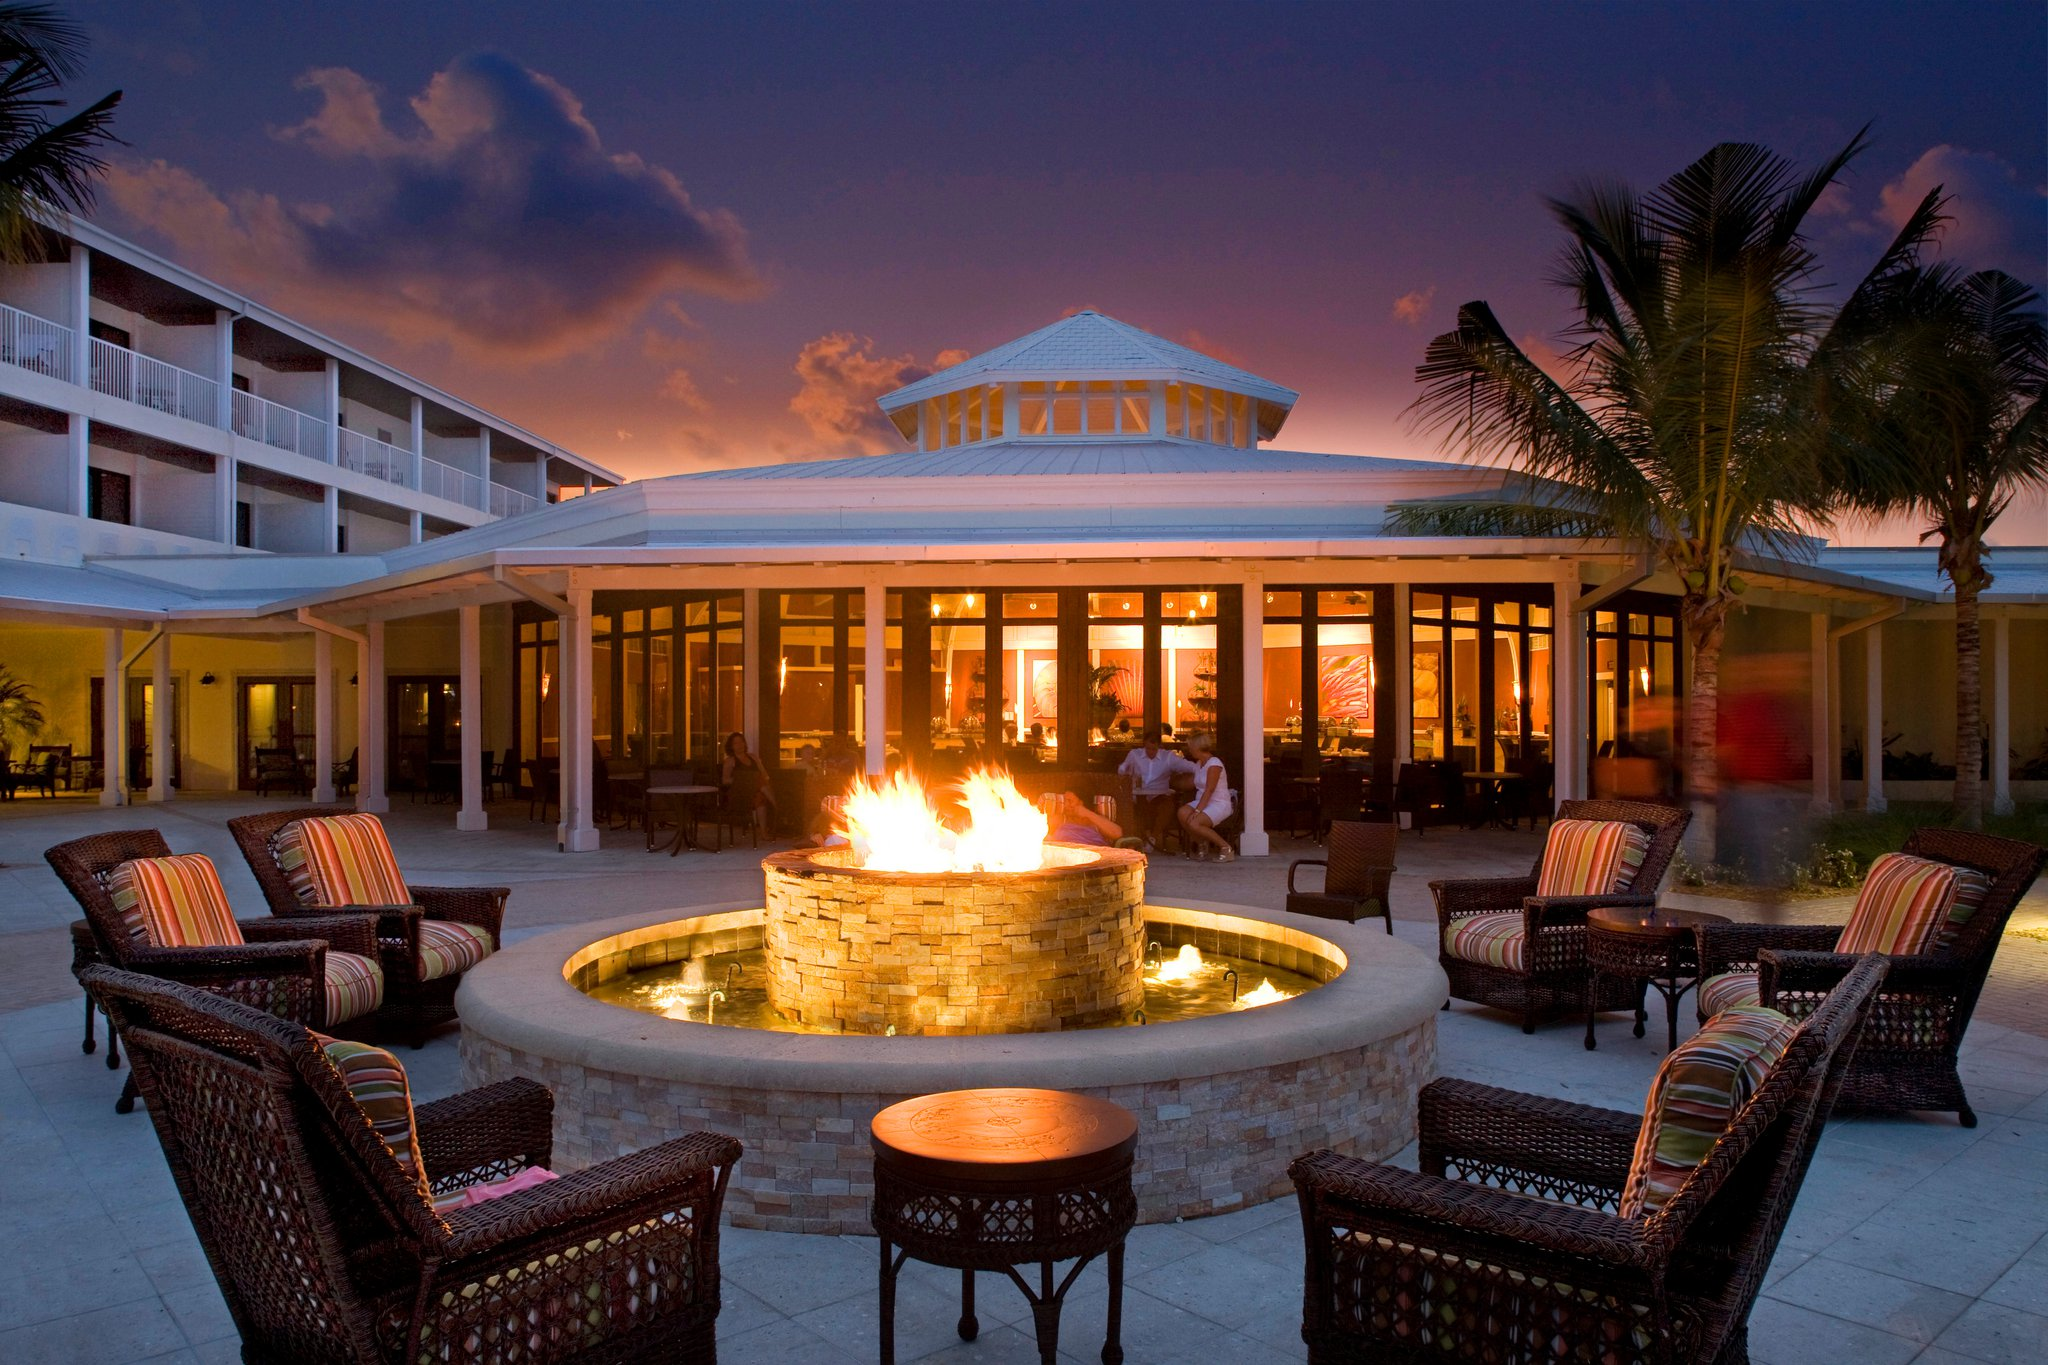 Hawks_Cay_resort_2.jpg